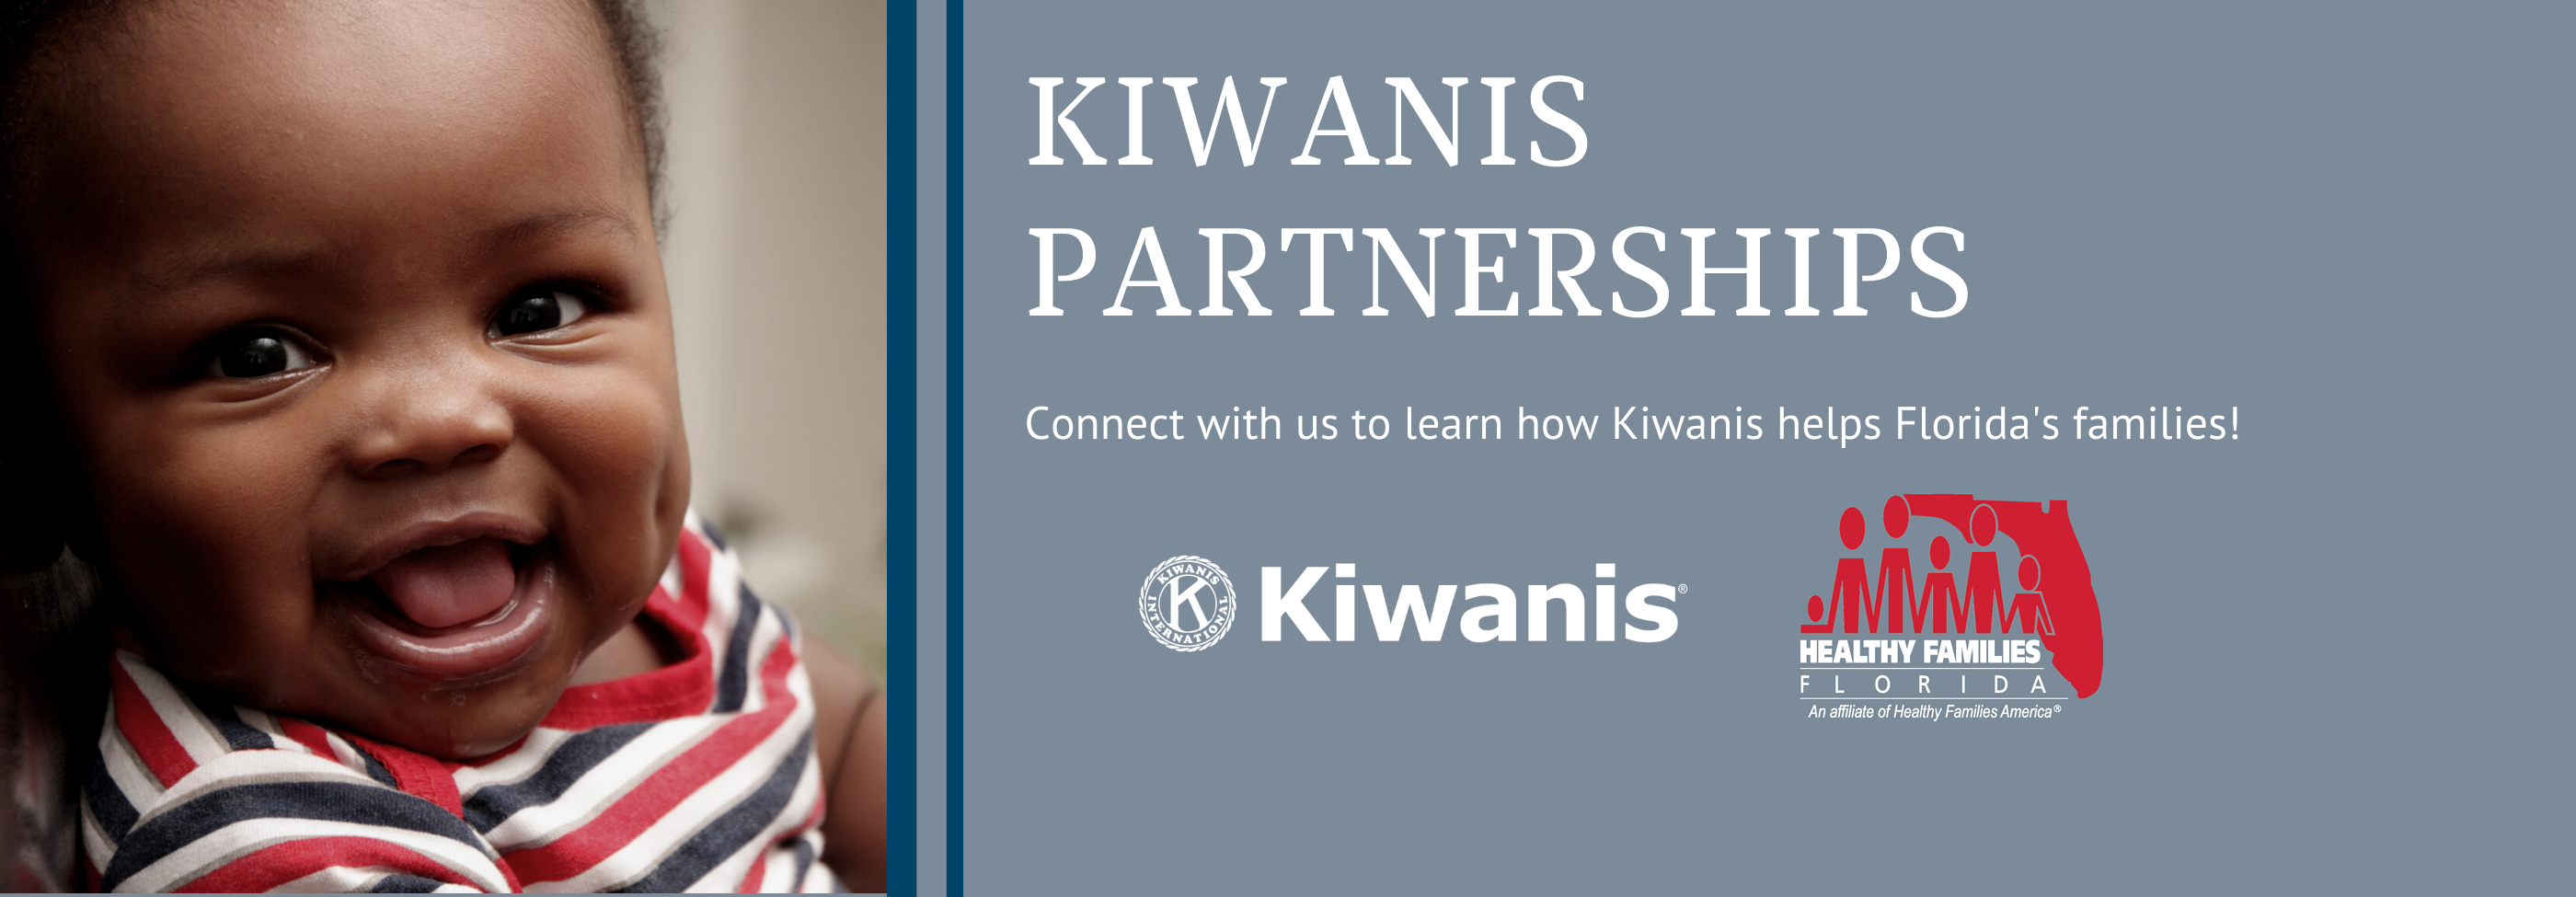 Kiwanis Partnerships